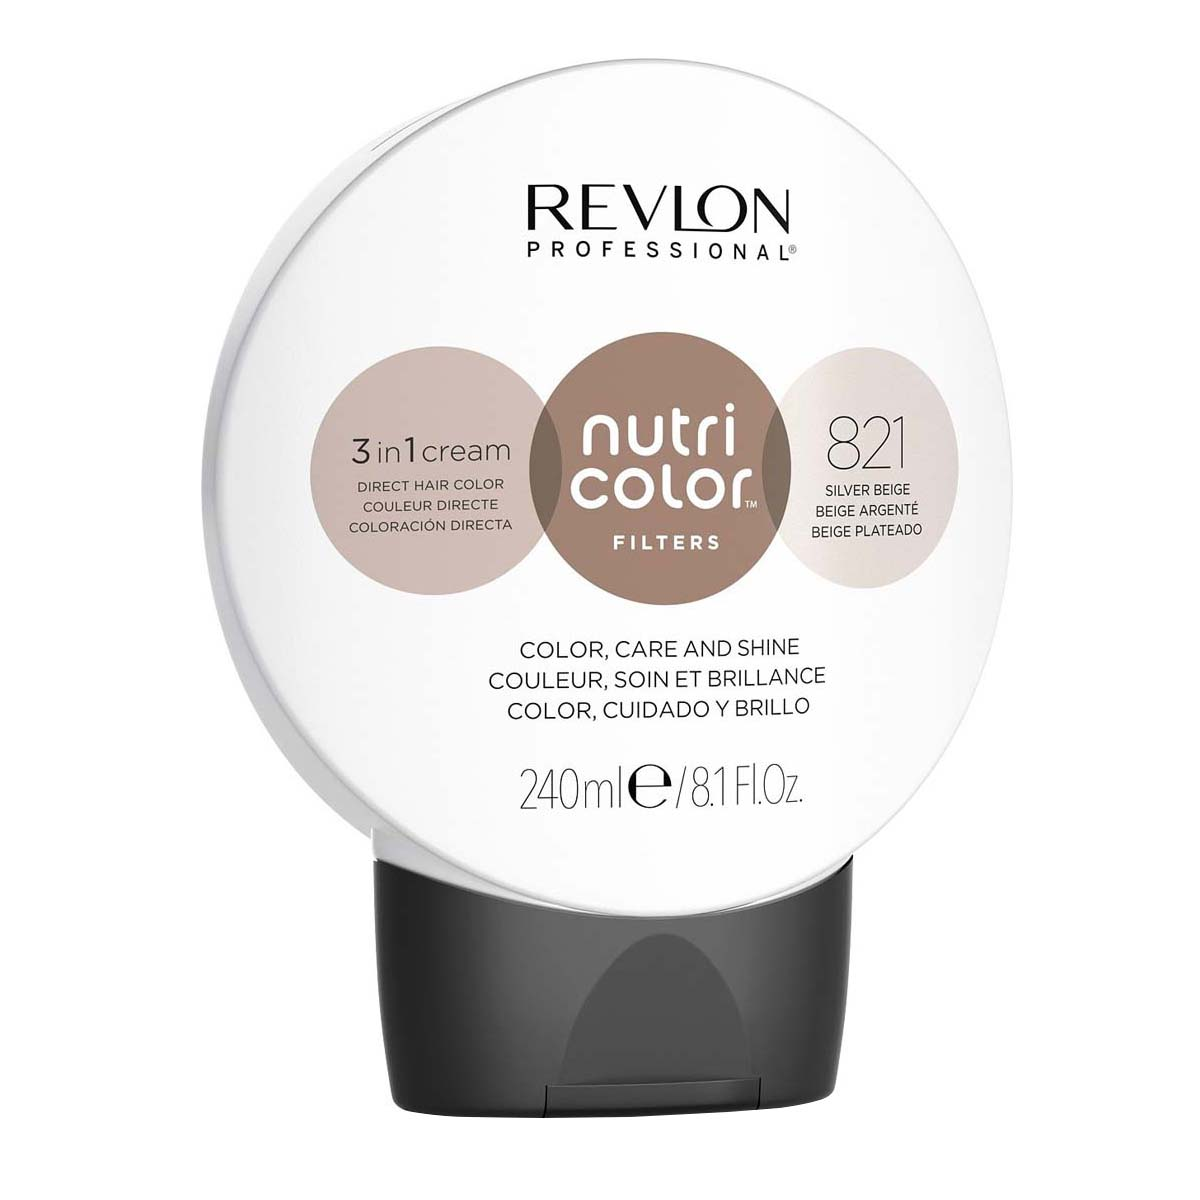 Nutri Color Filters 240ml - 821 Beige Argenté